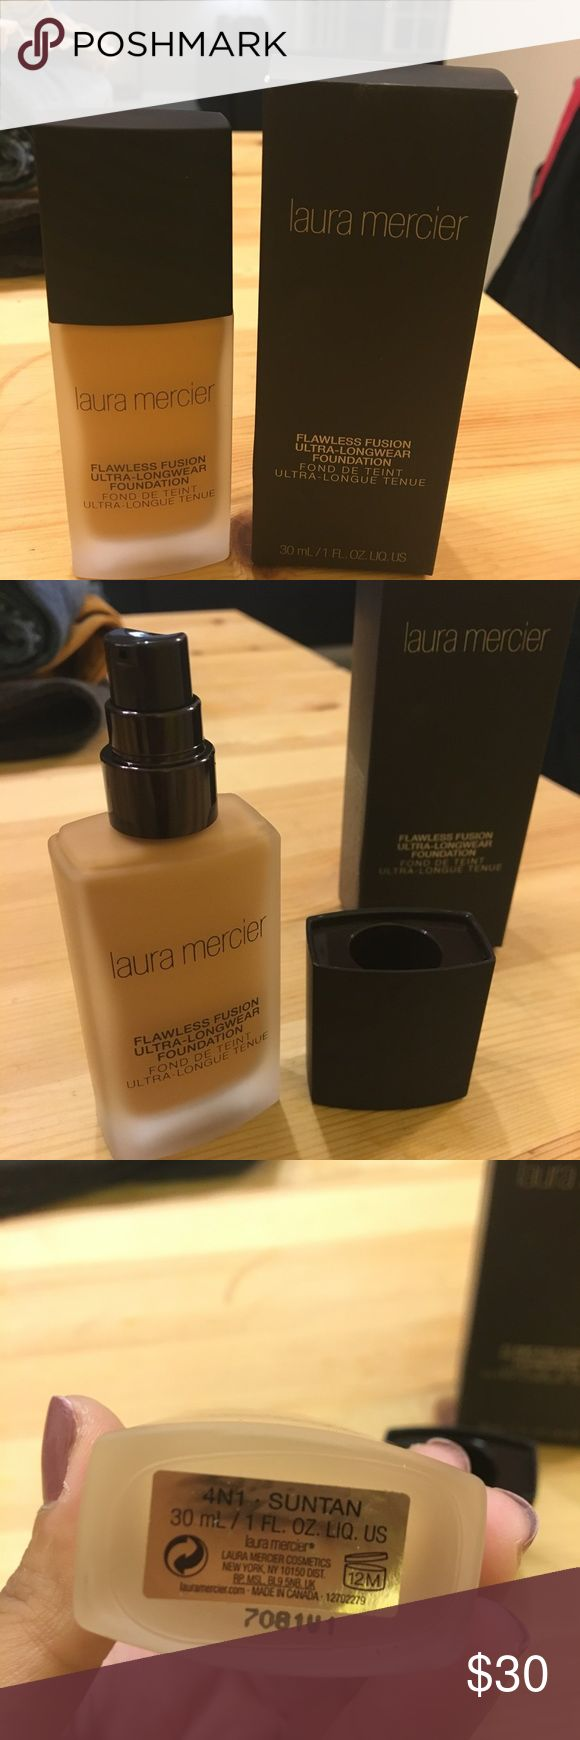 Laura Mercier Flawless Fusion Foundation FLAWLESS FUSION.   Ultra-Longwear Foundation.  A 15-hour long wearing, oil-free liquid foundation with a matte finish and weightless medium to full coverage.  Color: Sutan Laura Mercier Makeup Foundation